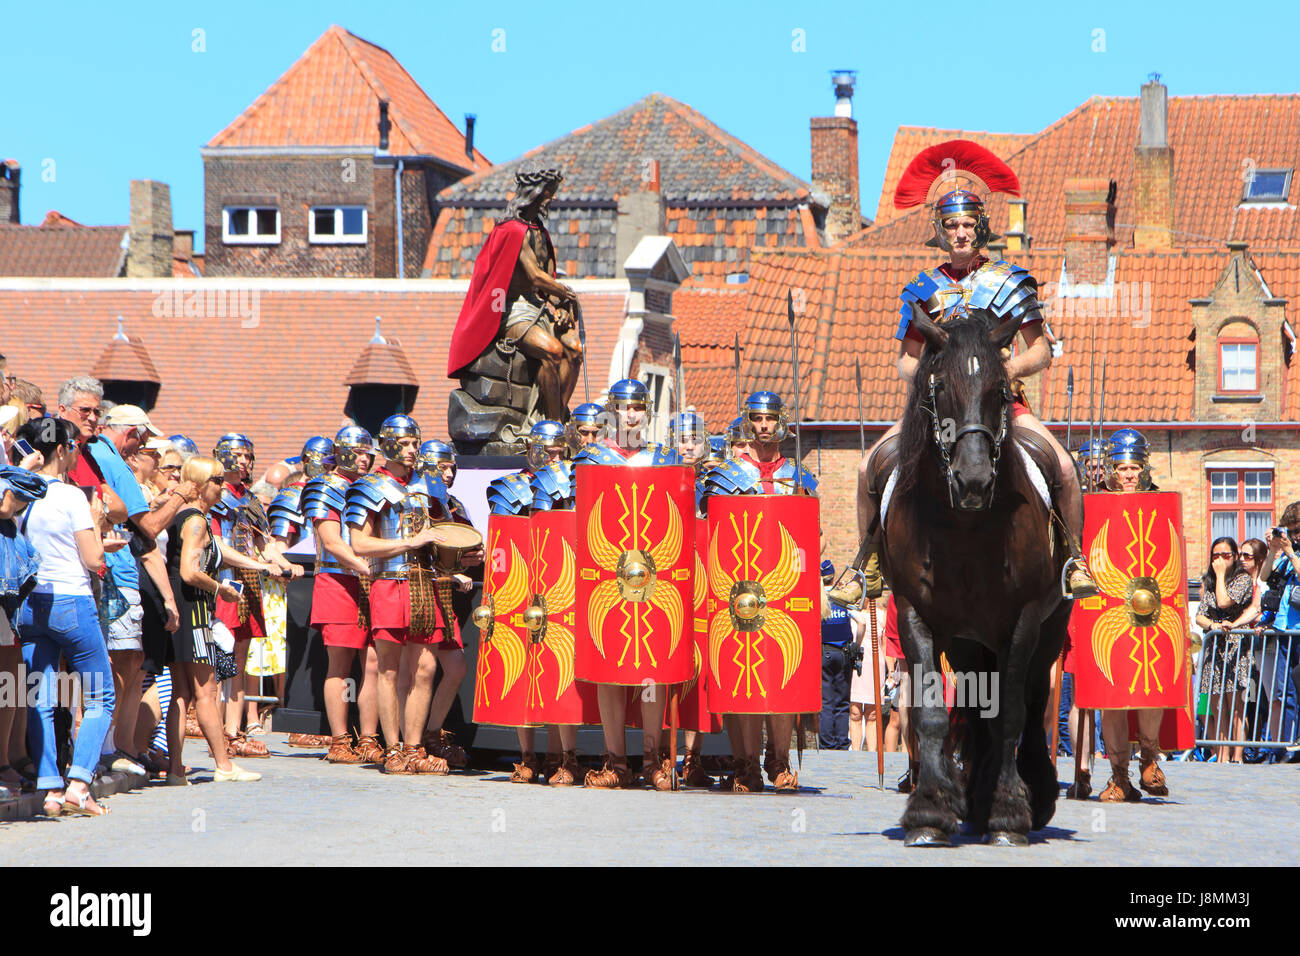 Roman Legionaries pulling a wooden statue of Jesus Christ during the Procession of the Holy Blood in Bruges, Belgium - Stock Image